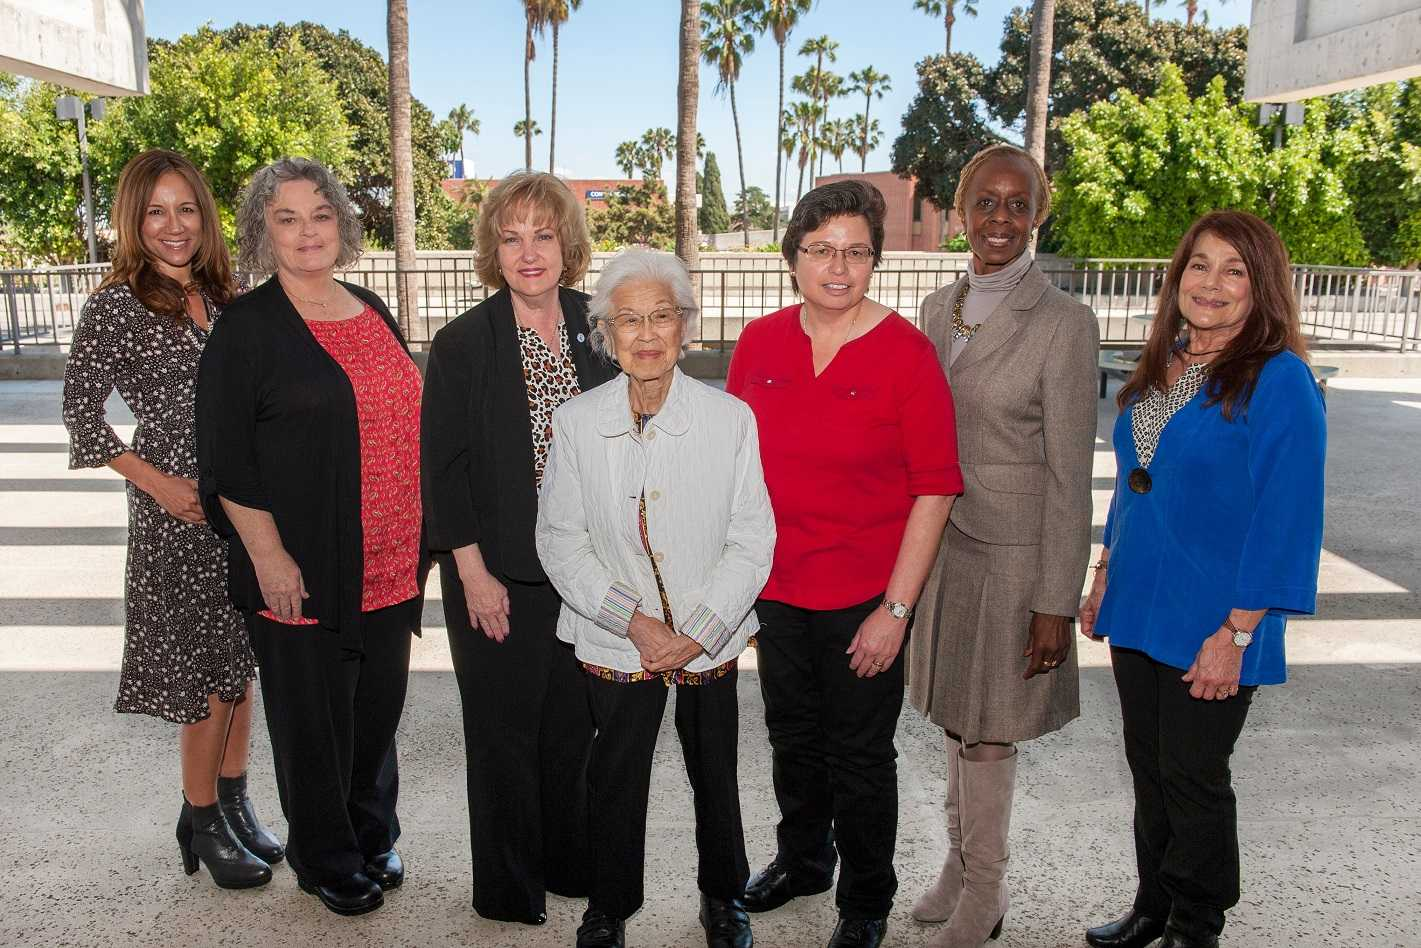 El Camino celebrates 20th annual Women's Wall of Fame